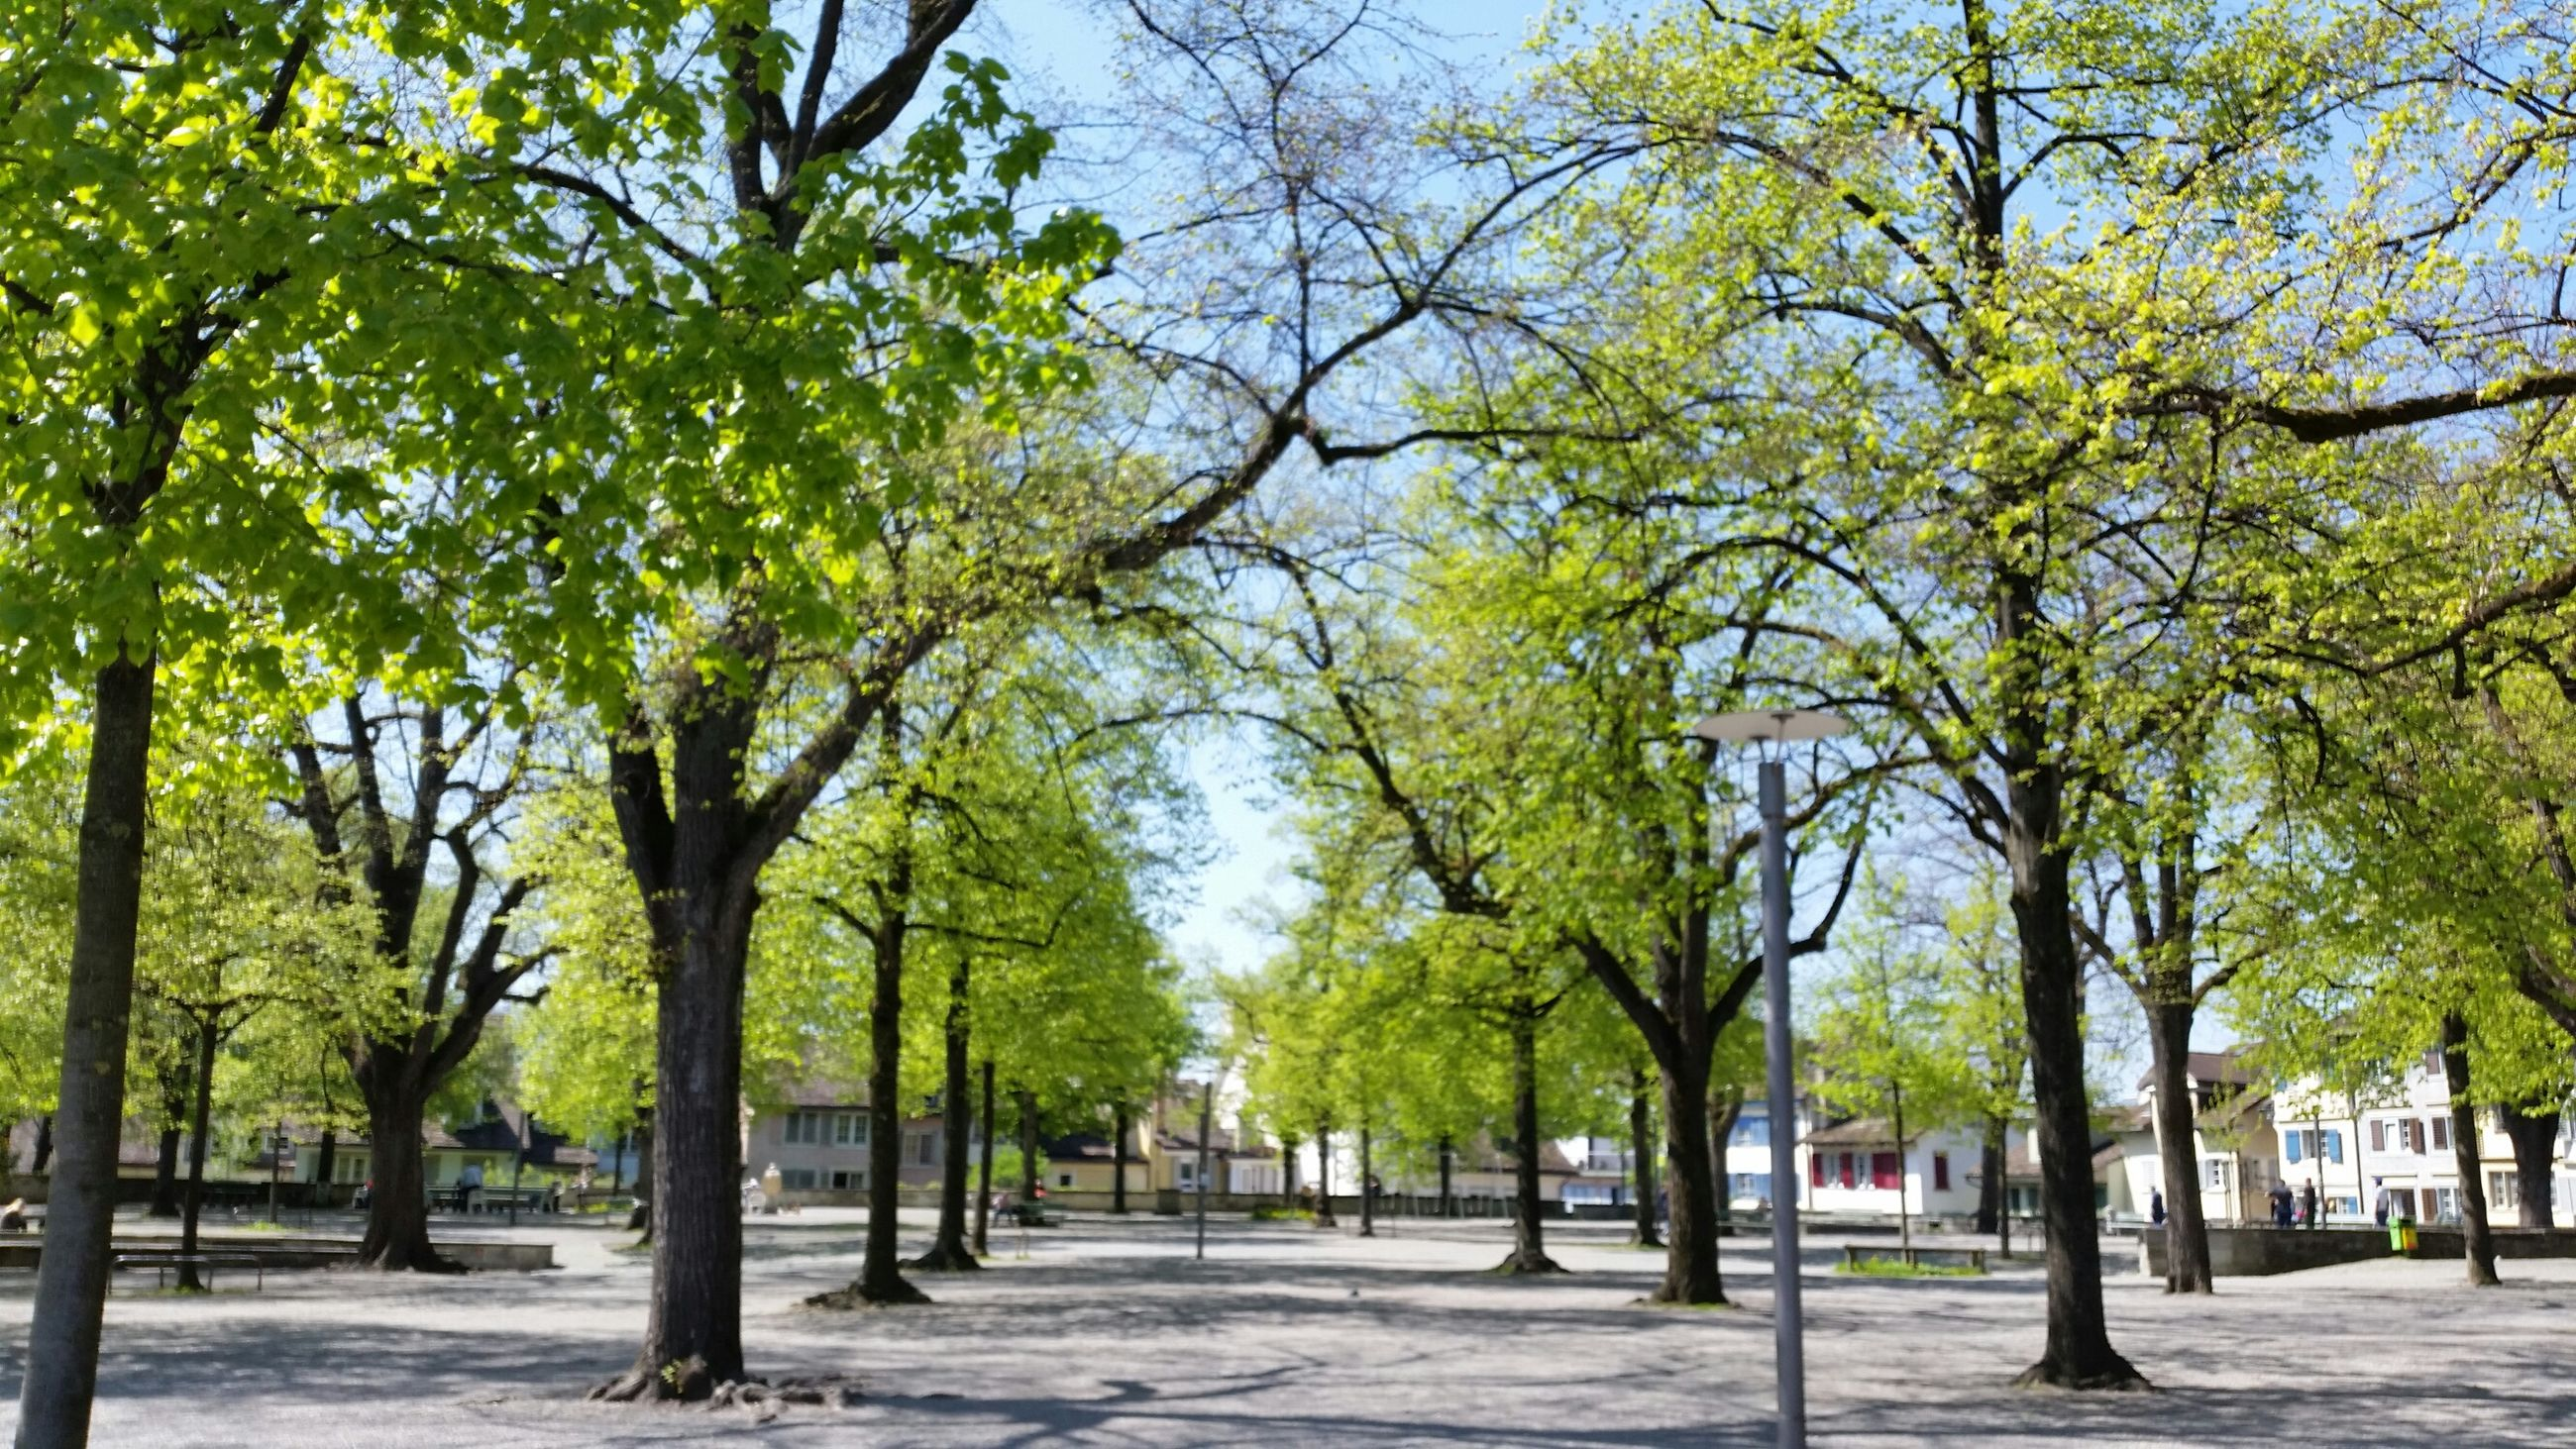 tree, the way forward, treelined, growth, tree trunk, branch, footpath, park - man made space, tranquility, road, nature, sky, green color, tranquil scene, street, shadow, beauty in nature, sunlight, transportation, diminishing perspective